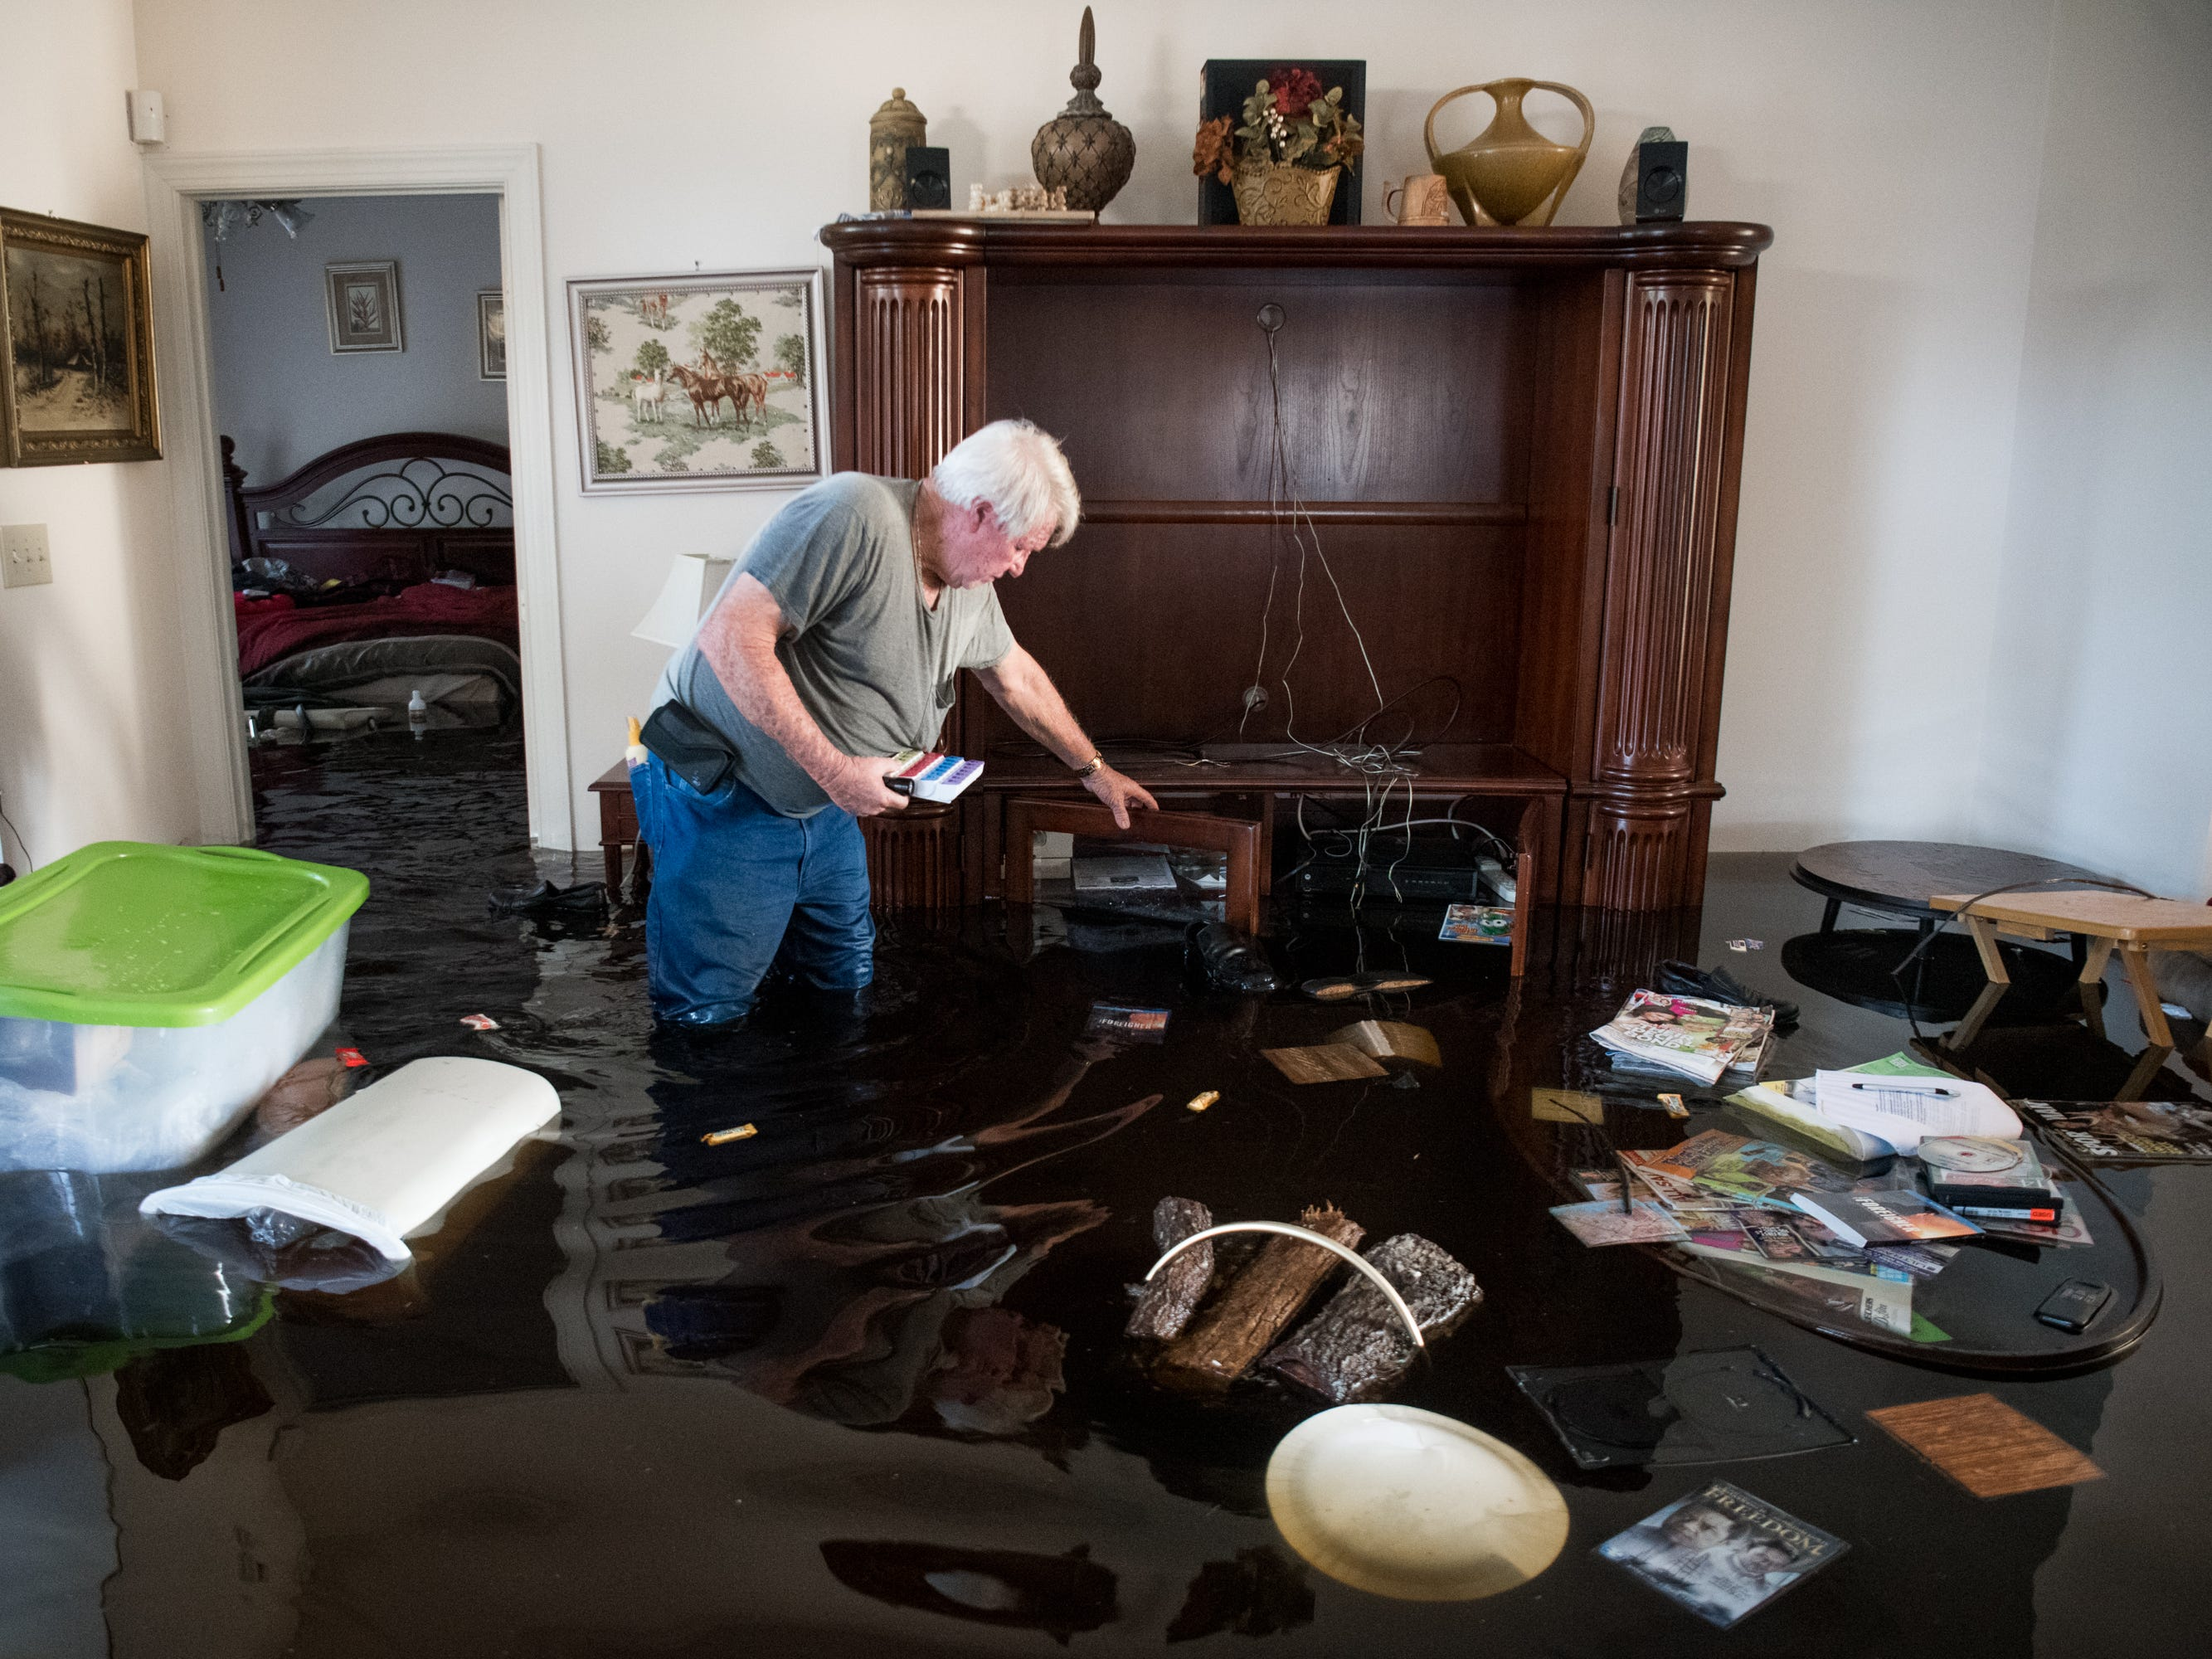 Billy Hardee removes valuables from his home as floodwater caused by Hurricane Florence rises at Aberdeen Country Club on Sept. 20, 2018, in Longs, S.C. Floodwaters are expected to rise through the weekend in the area.